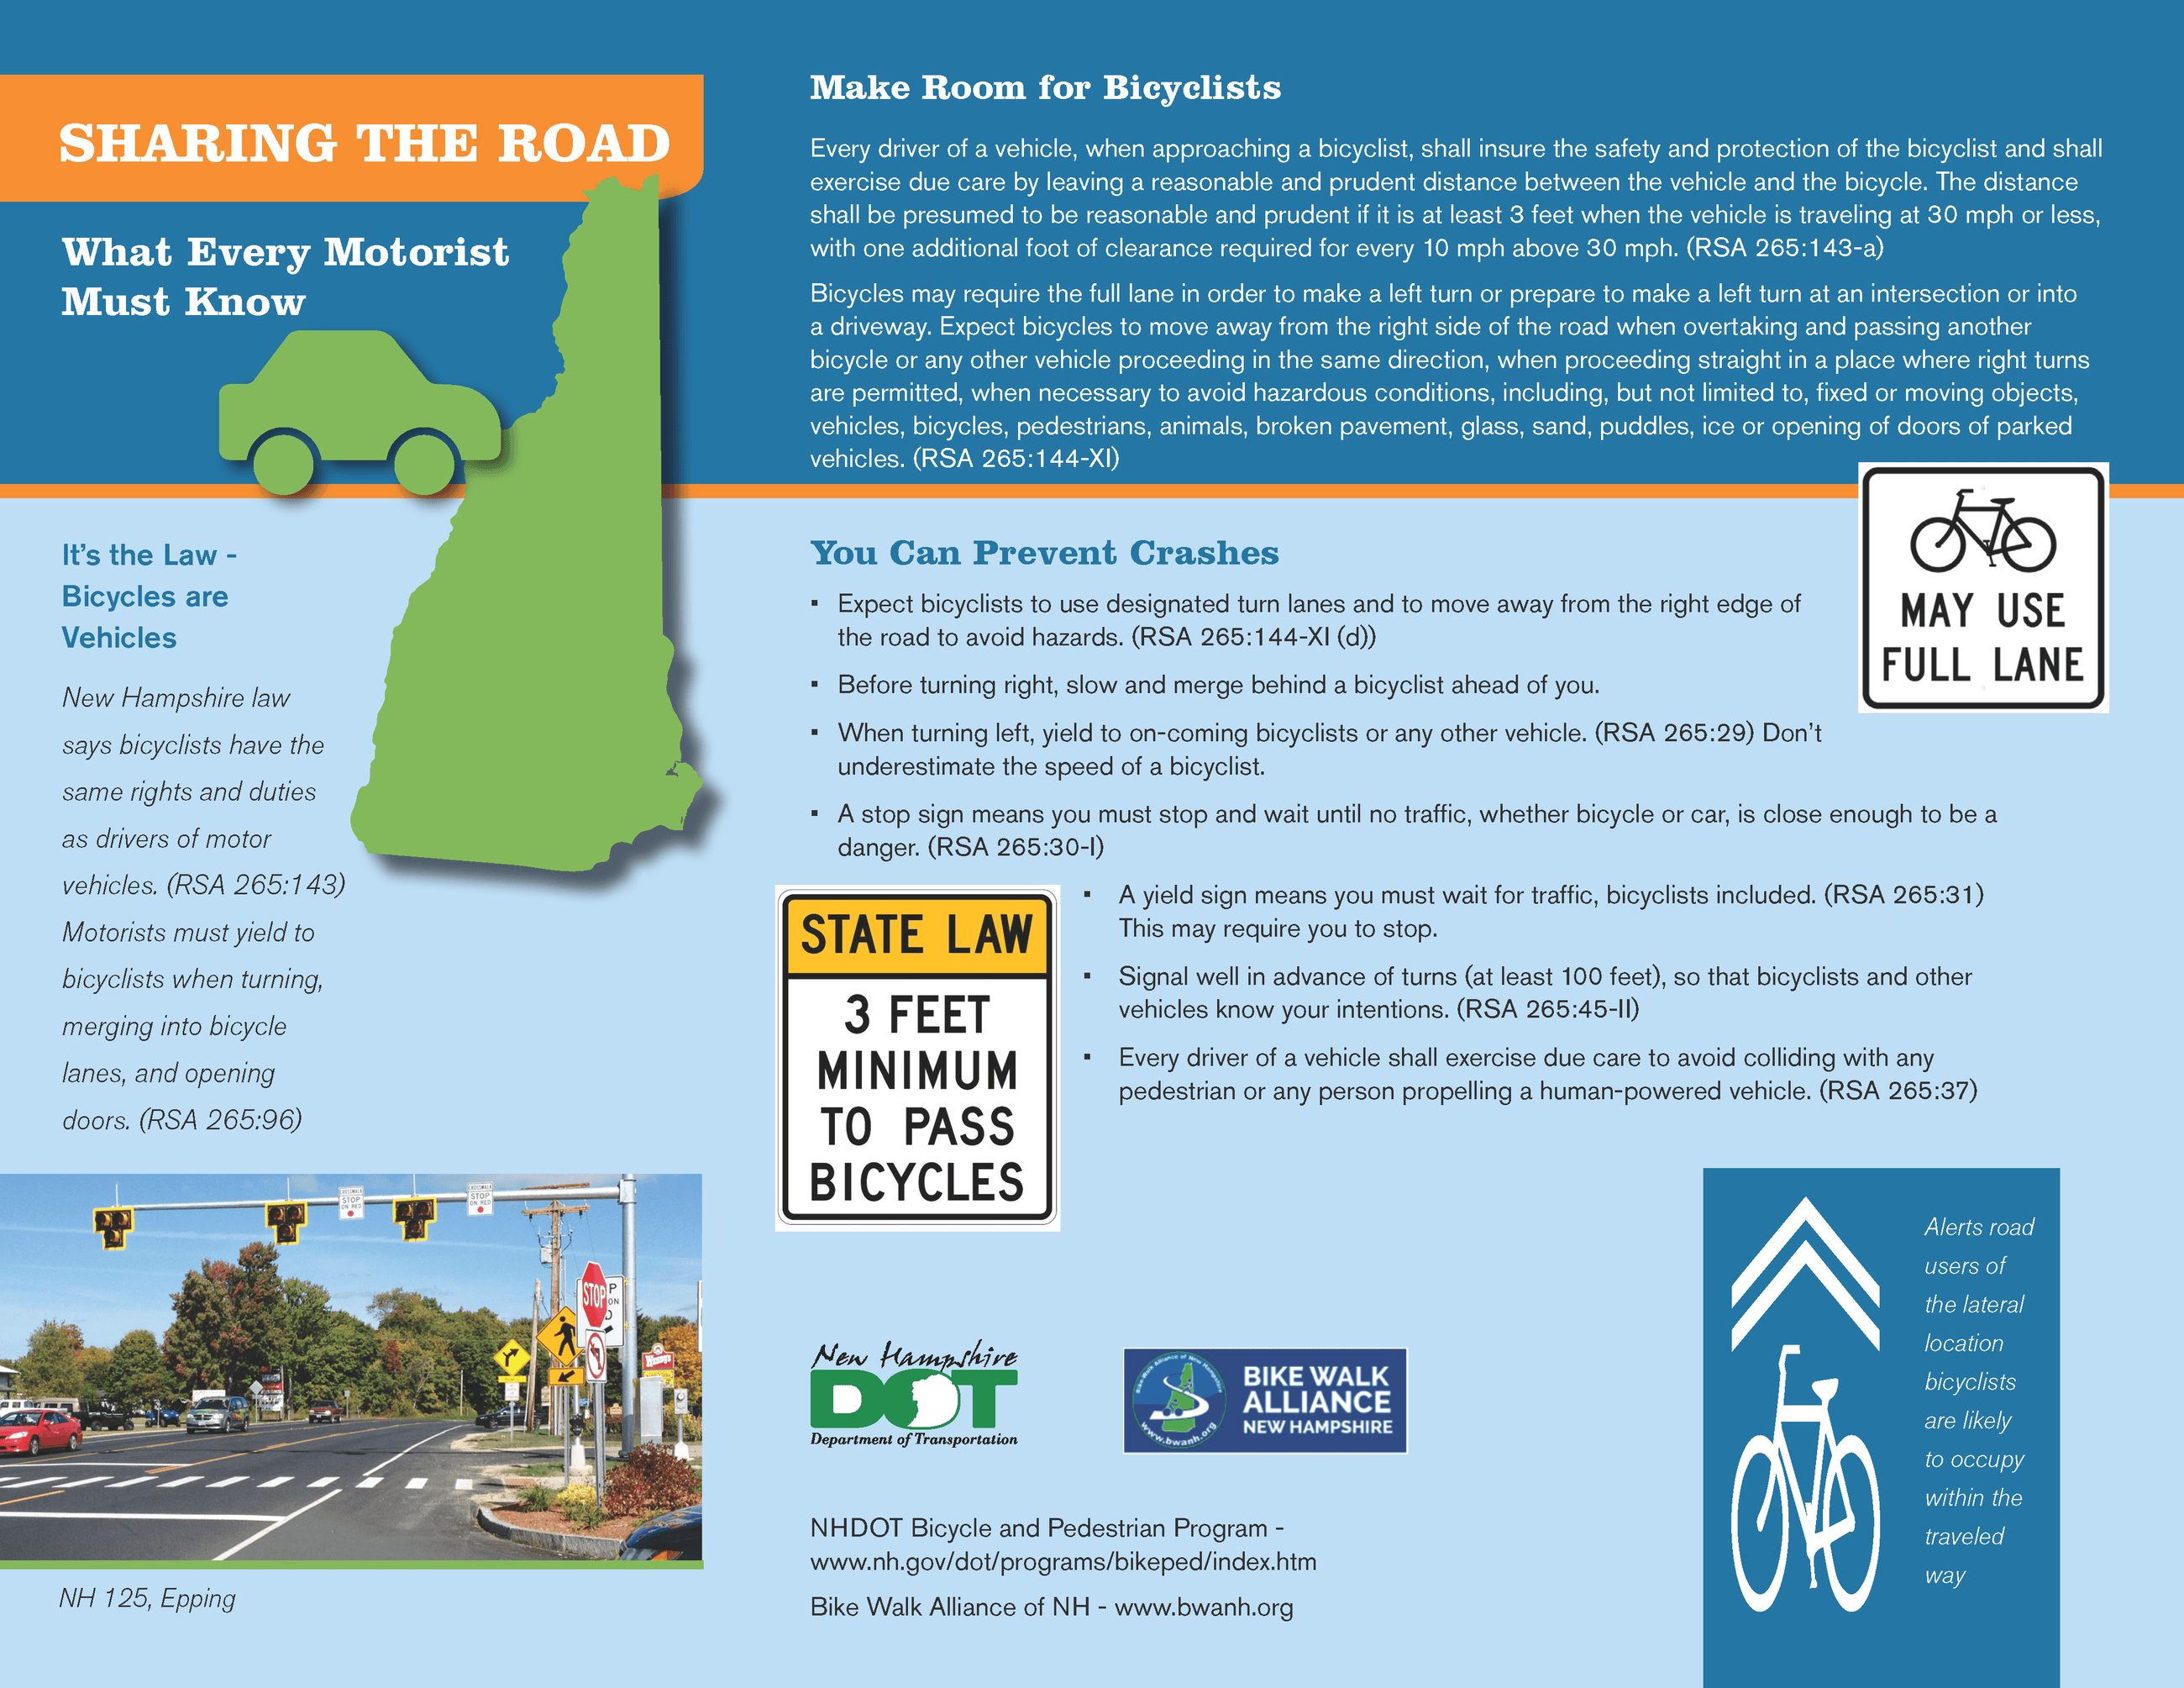 Sharing the Road Infographic